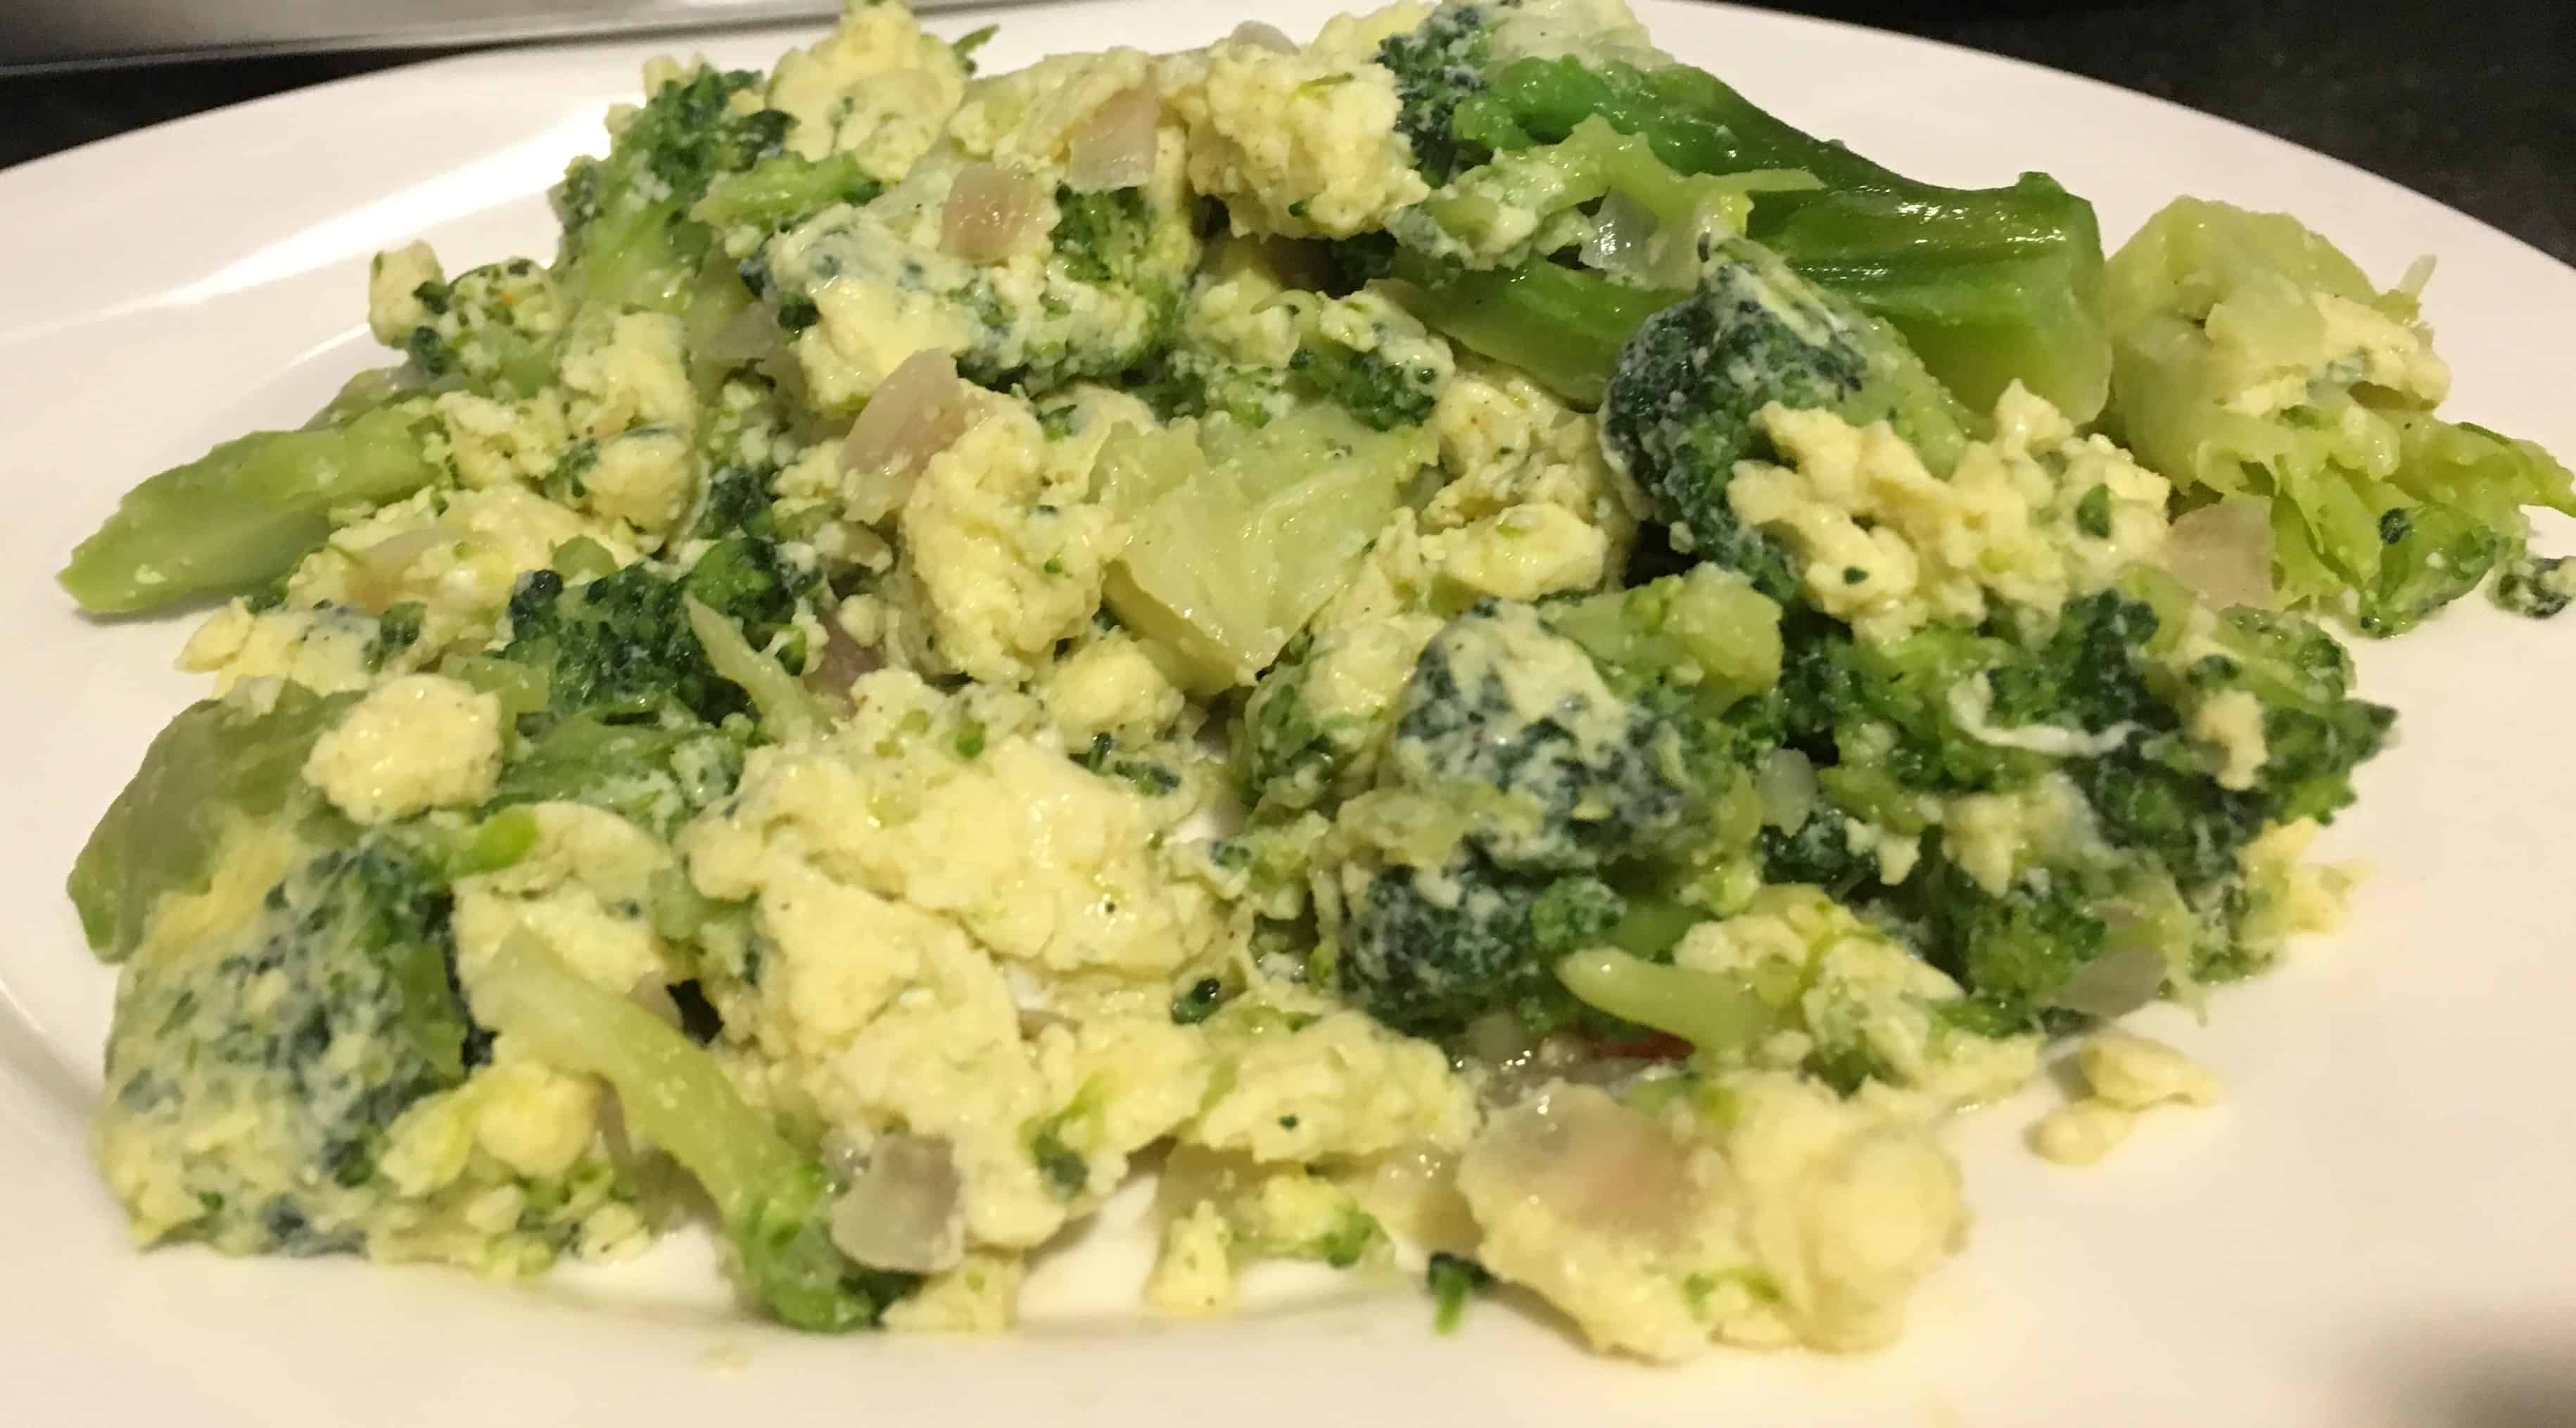 Image of Broccoli Scrambled Eggs